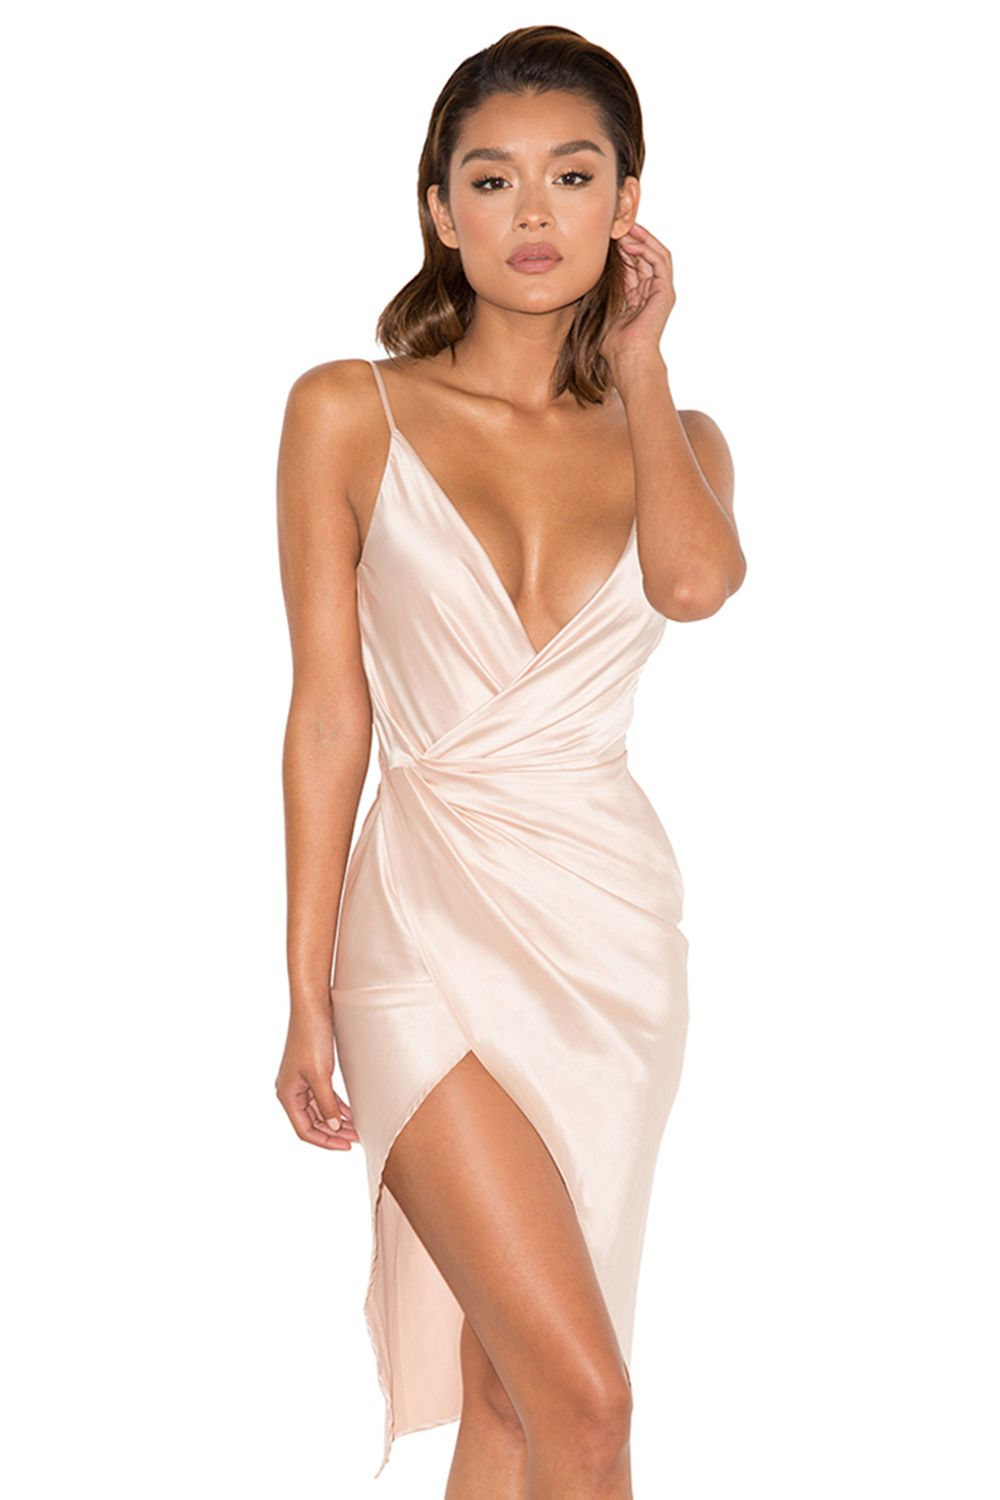 Buy motel coco backless bodycon dress in hot pink at motel rocks - Clothing Bodycon Dresses Coco Nude Satin Drape Back Dress More